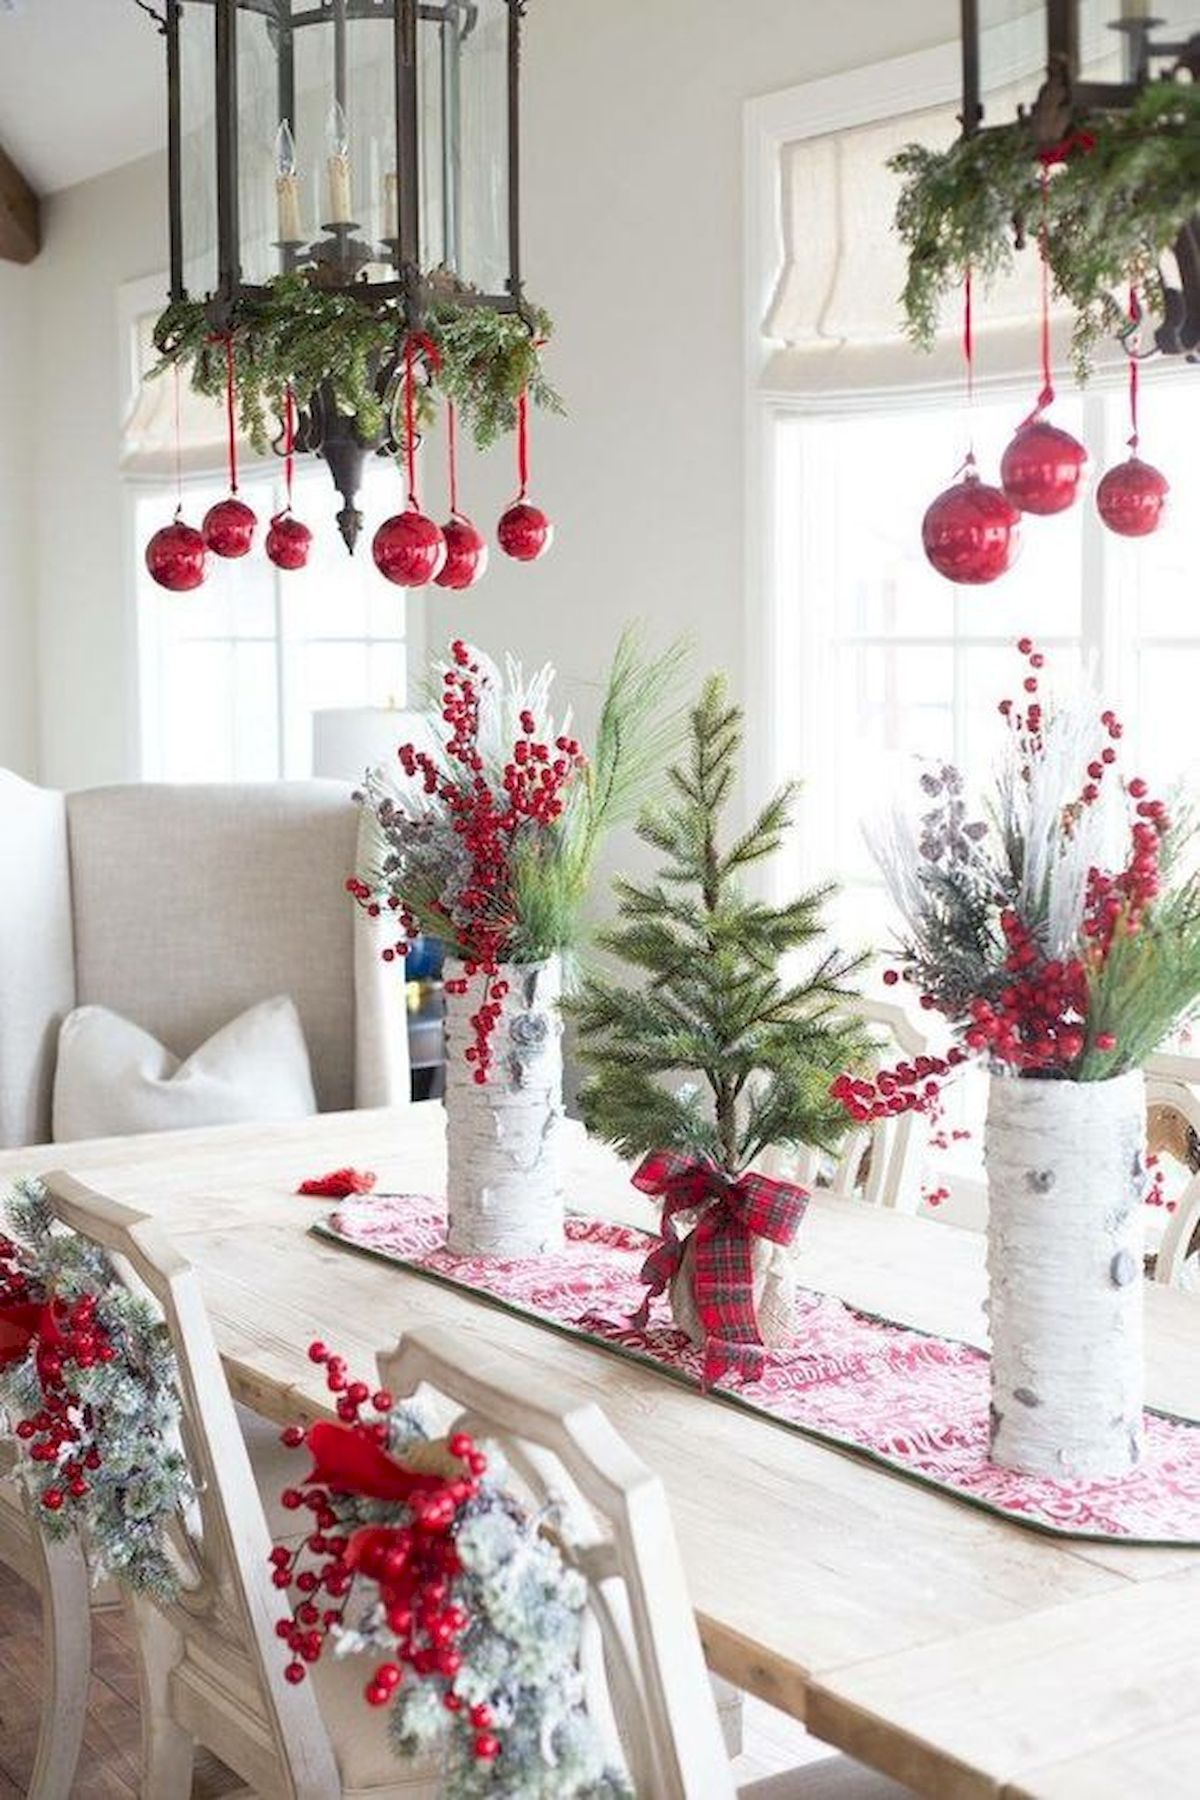 60 Elegant Christmas Decorations Ideas | Christmas decorating ...